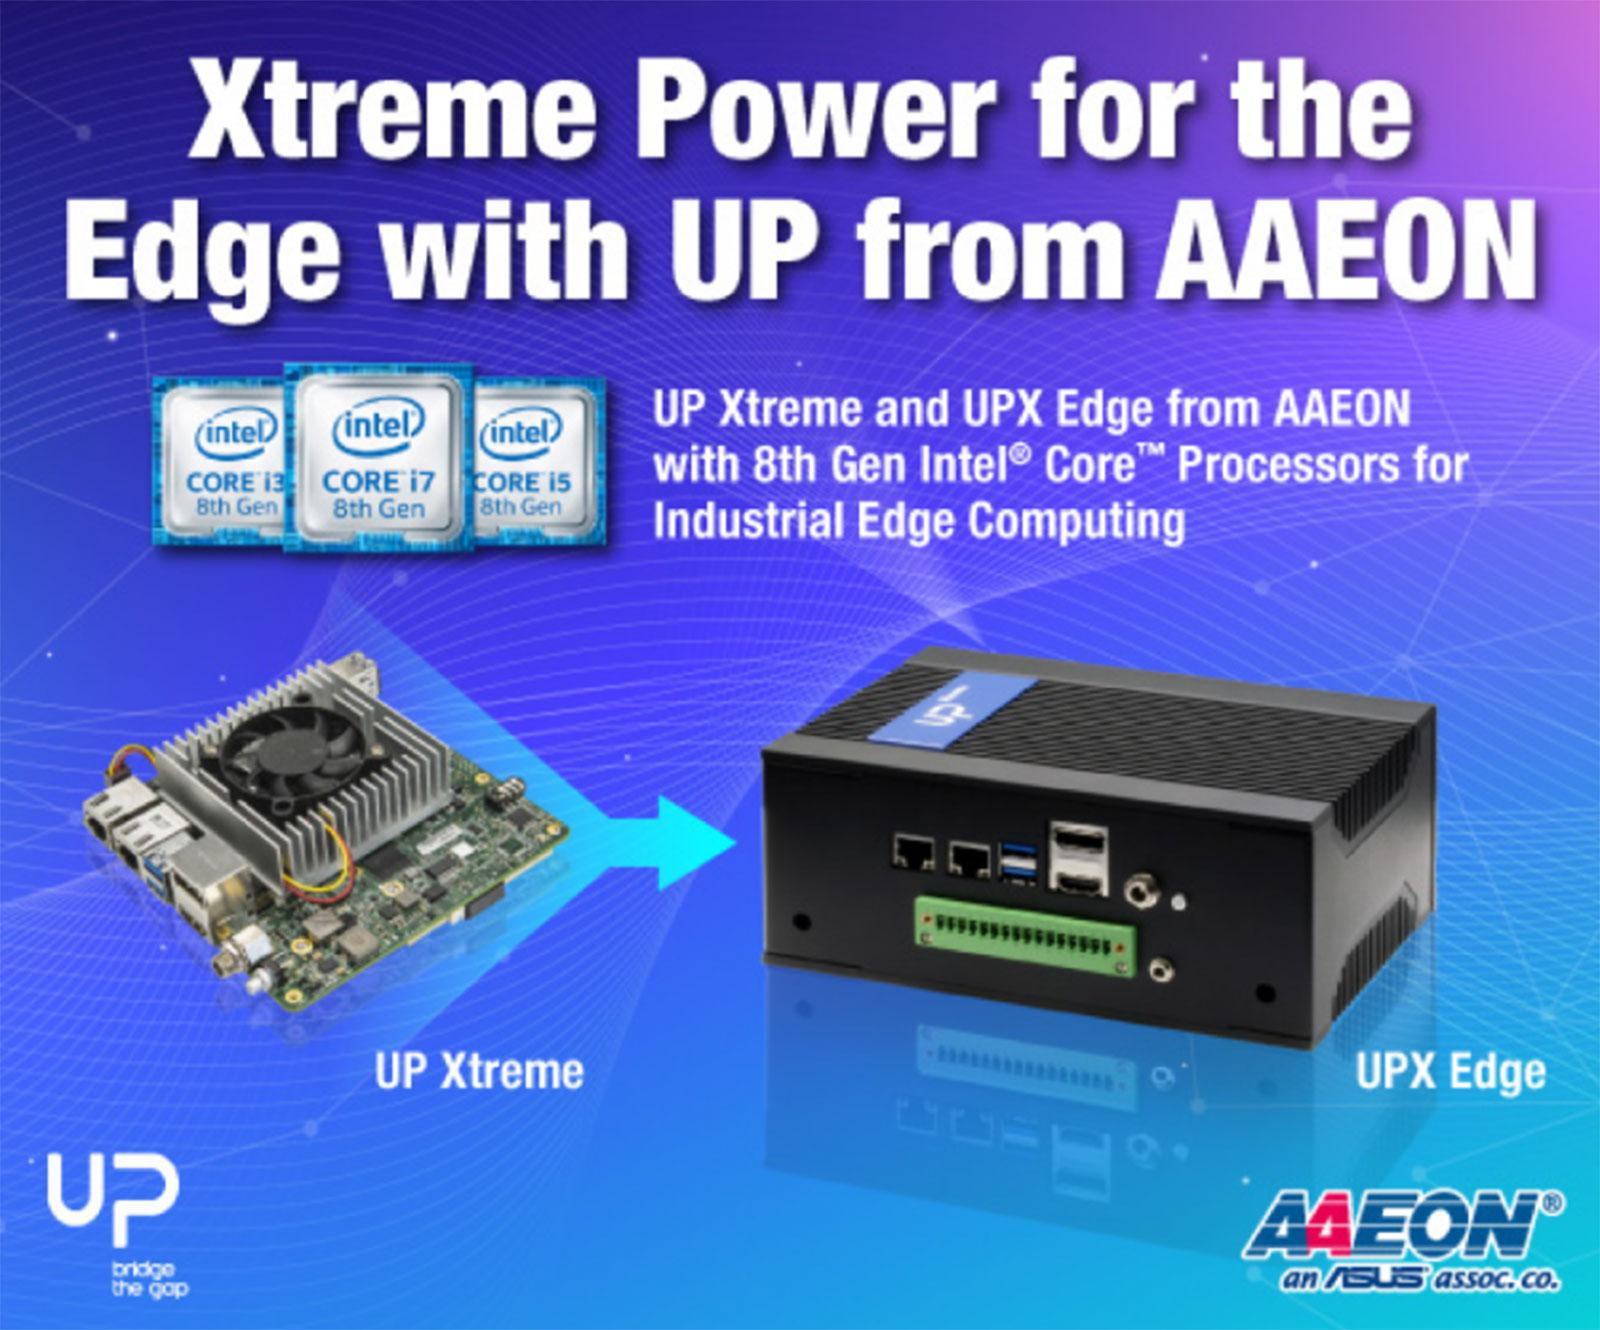 Xtreme Power for the Edge with UP from AAEON